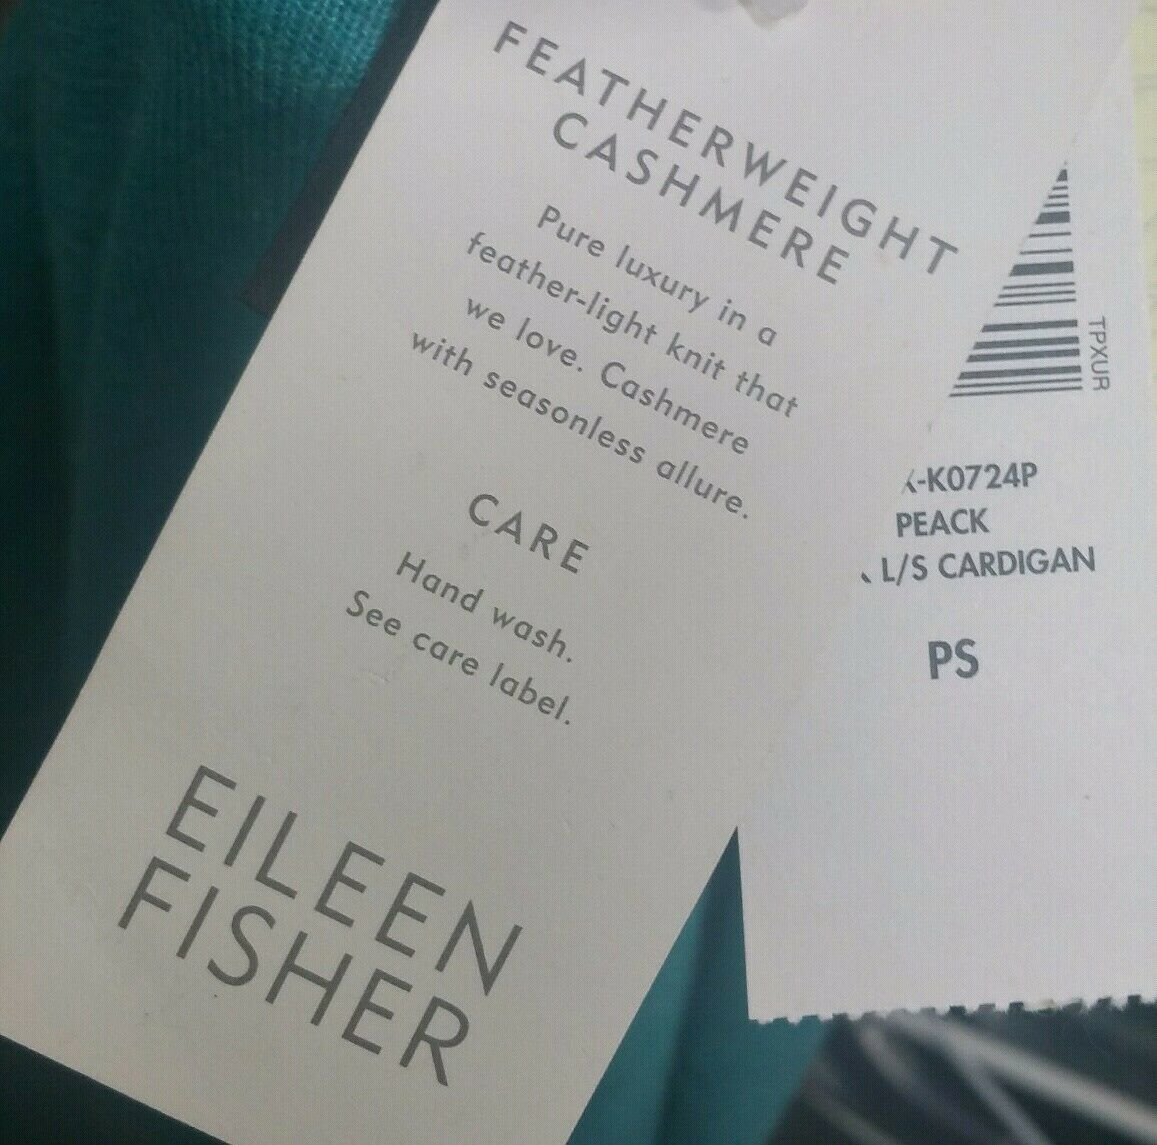 Eileen Fisher Featherweight Cashmere Cardigan Sweater Petite Small PS NWT